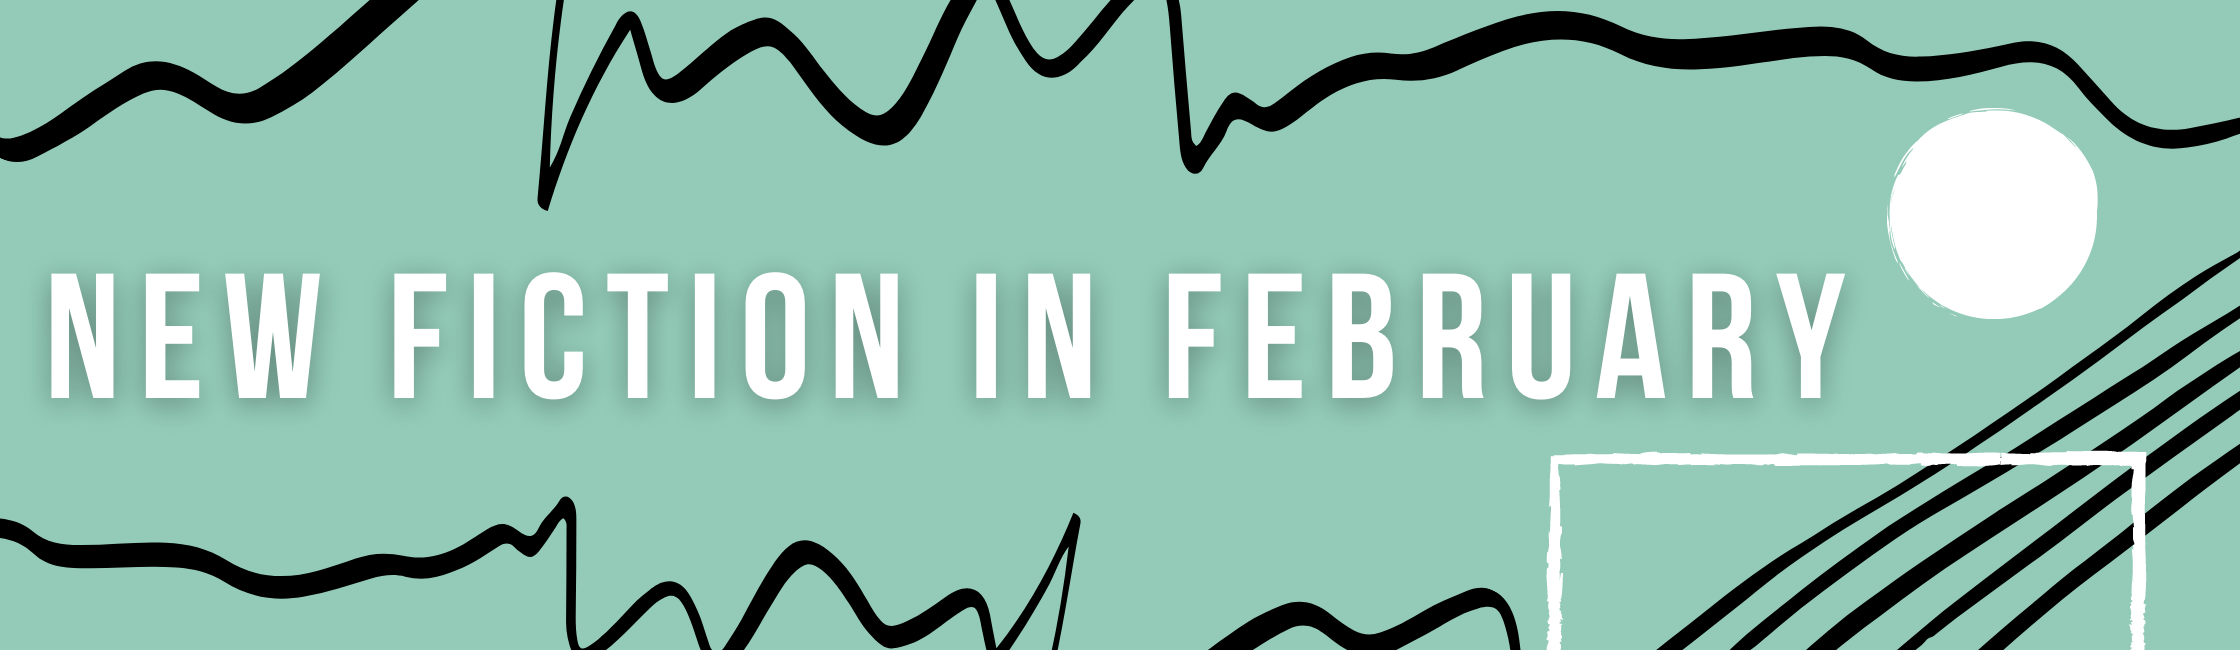 new fiction in February